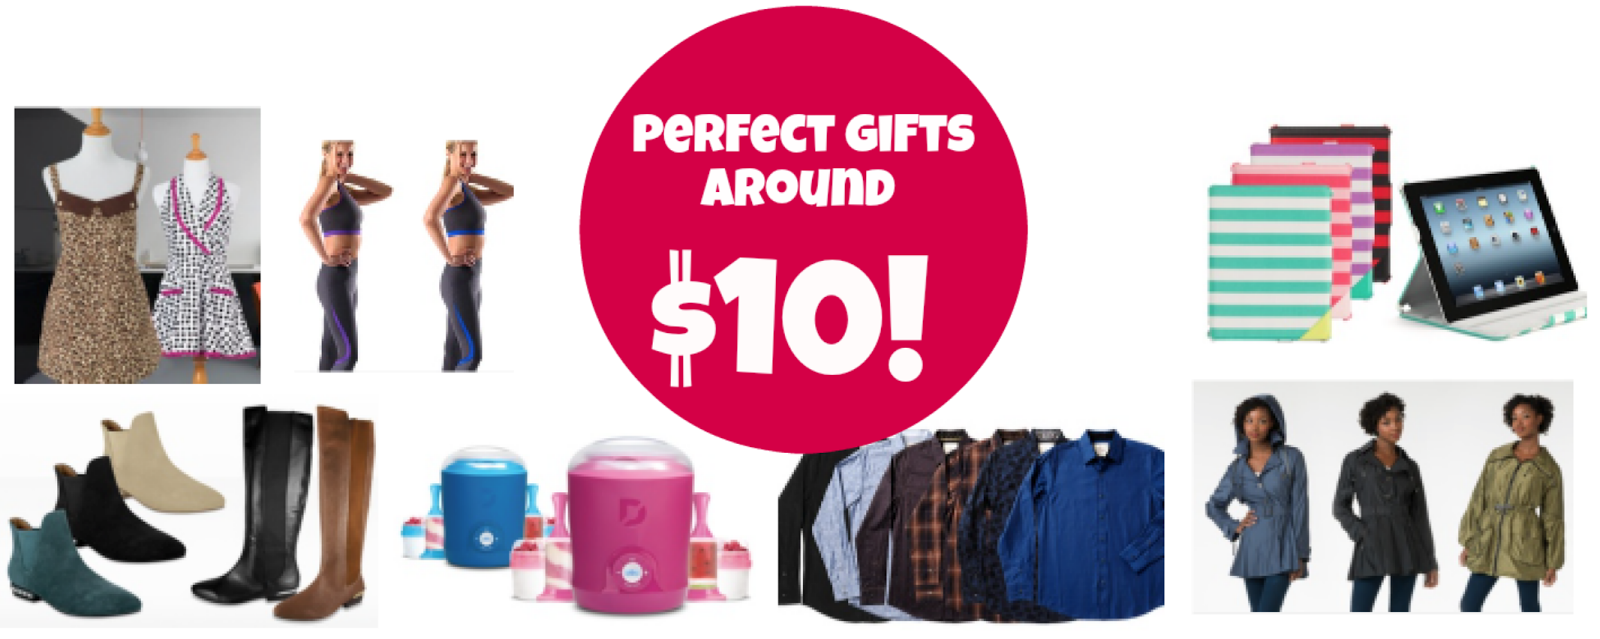 http://www.thebinderladies.com/2014/12/hot-groupon-awesome-gifts-for-men-women.html#.VIDIeIfduyM